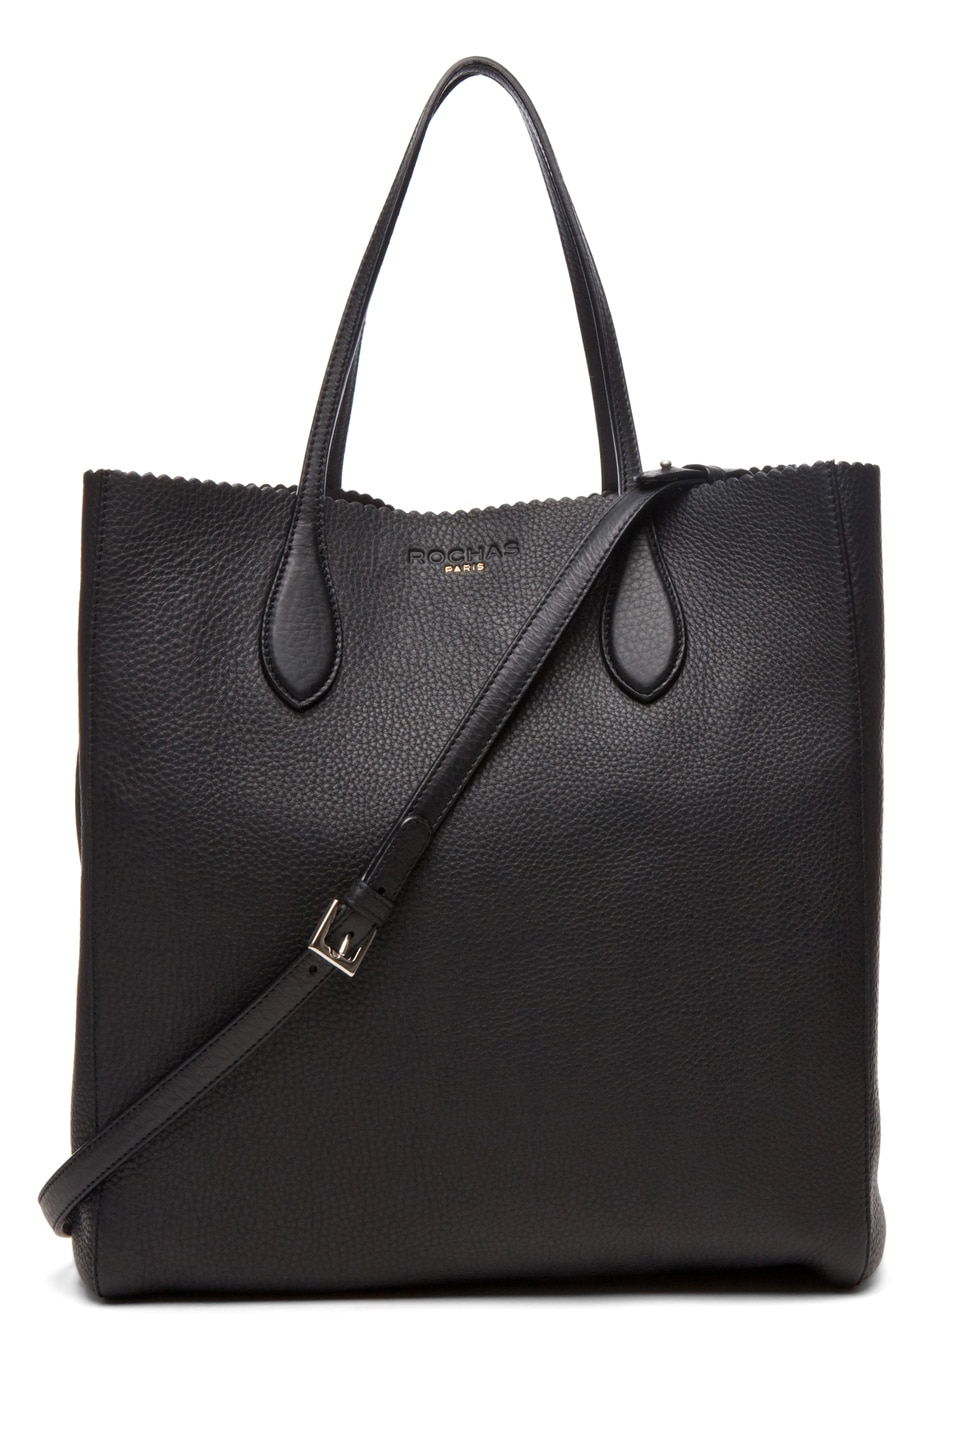 Image 1 of ROCHAS Borsa Tote in Black